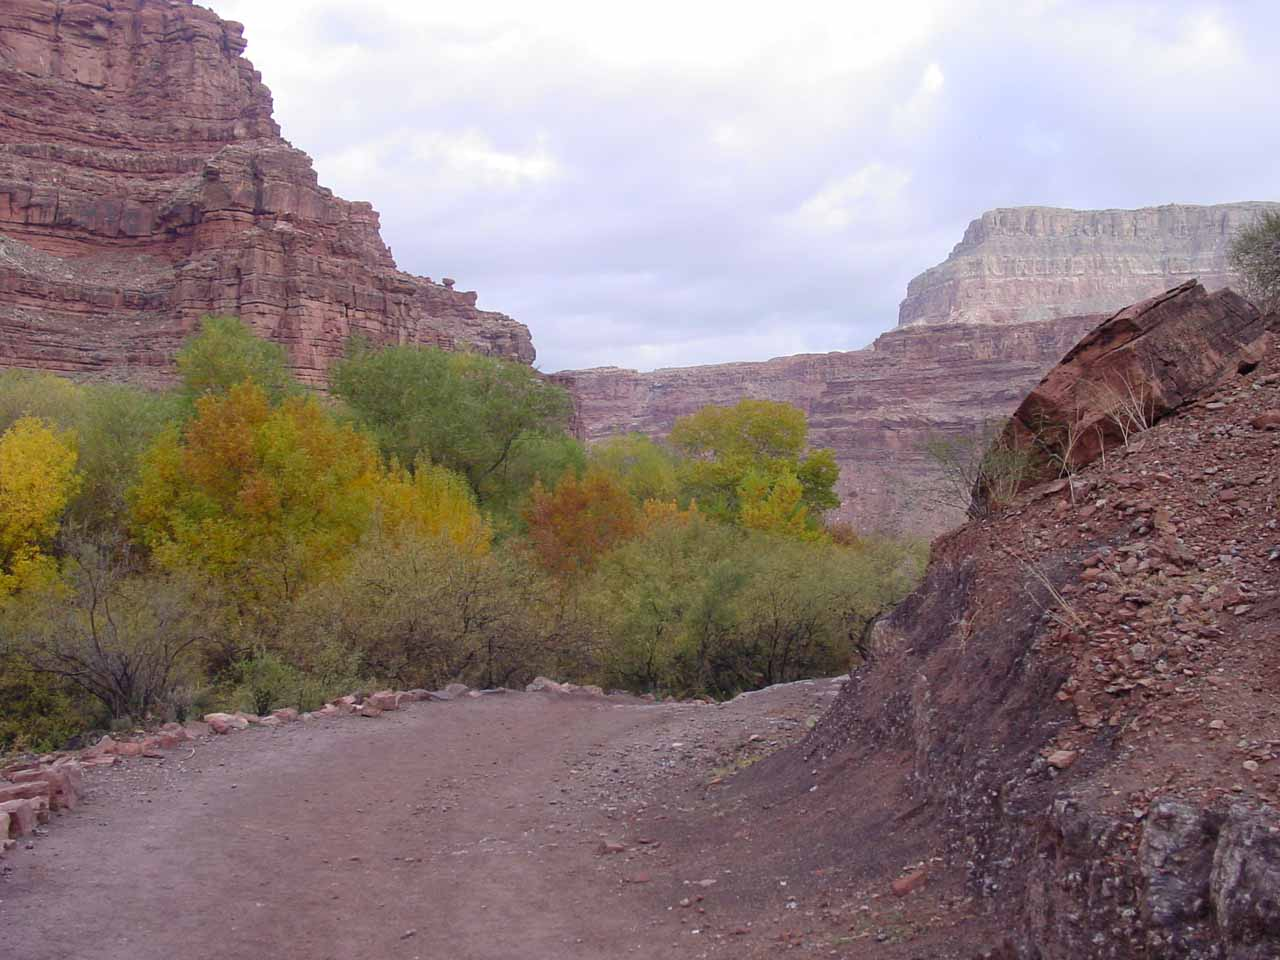 The trail beyond Supai Village